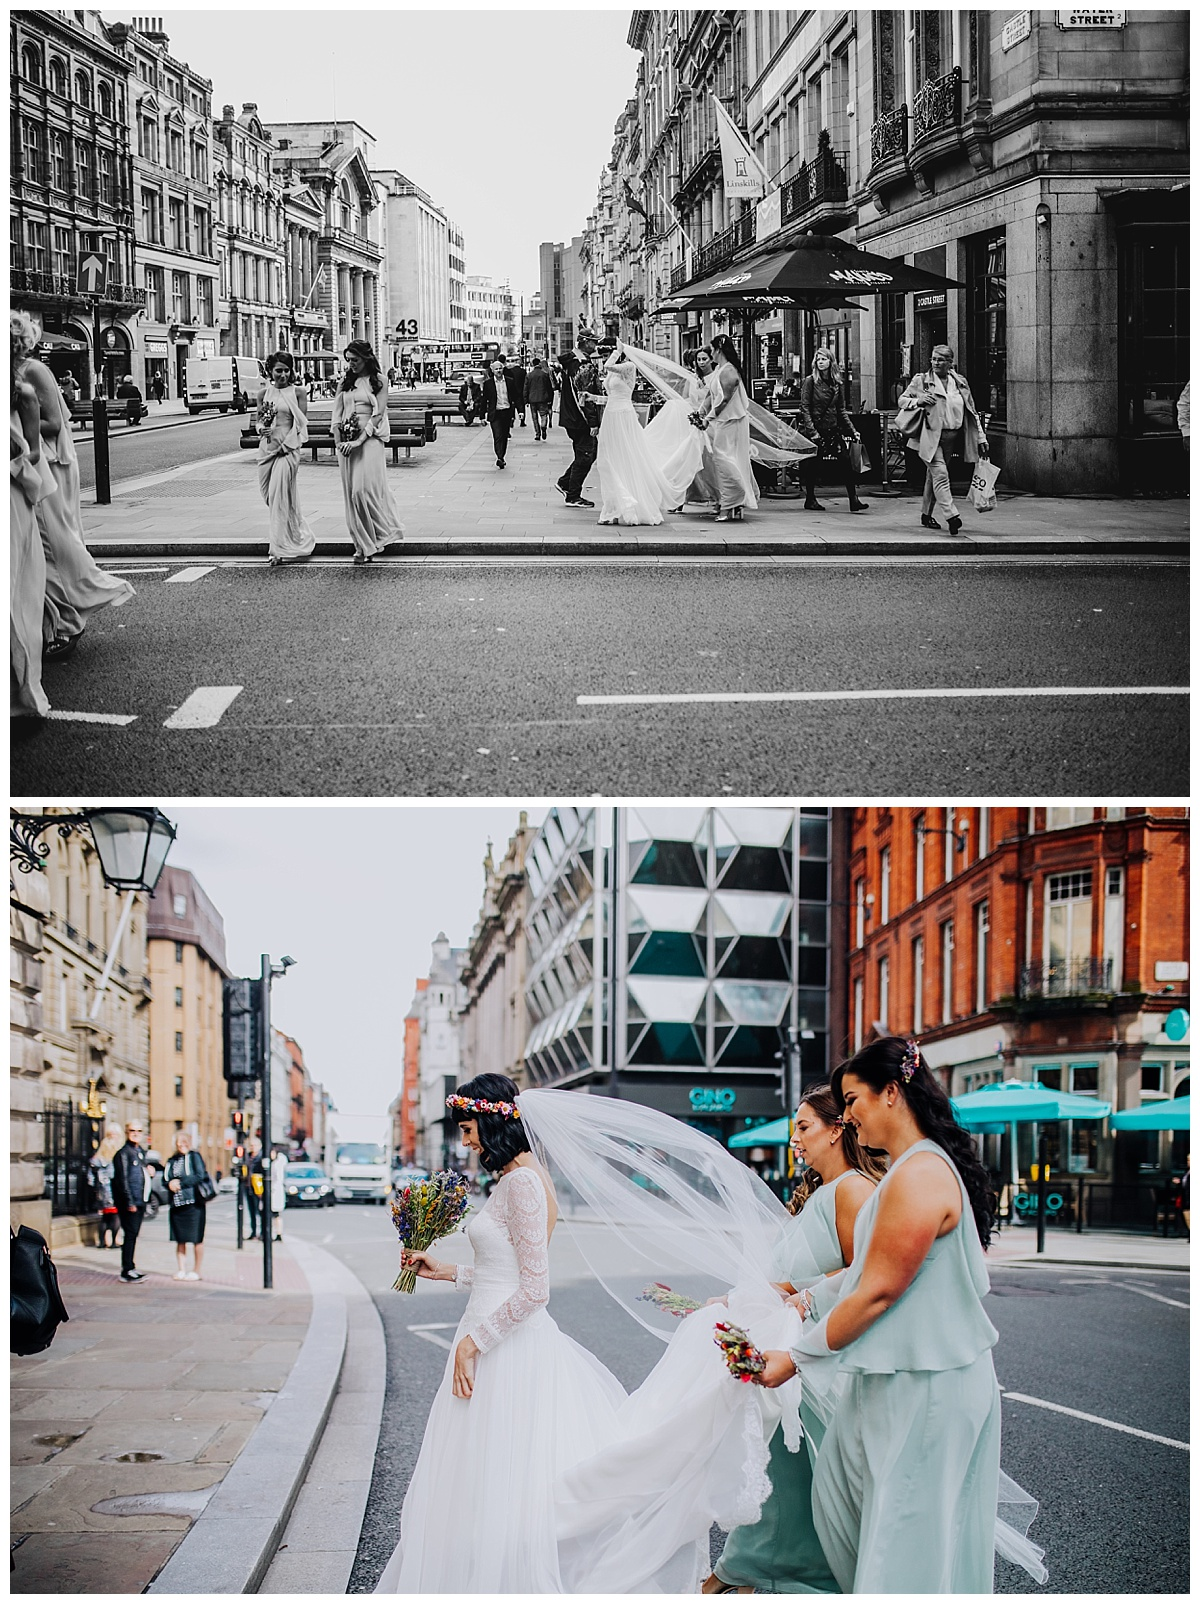 A burning man festival themed wedding at Constellations - Liverpool